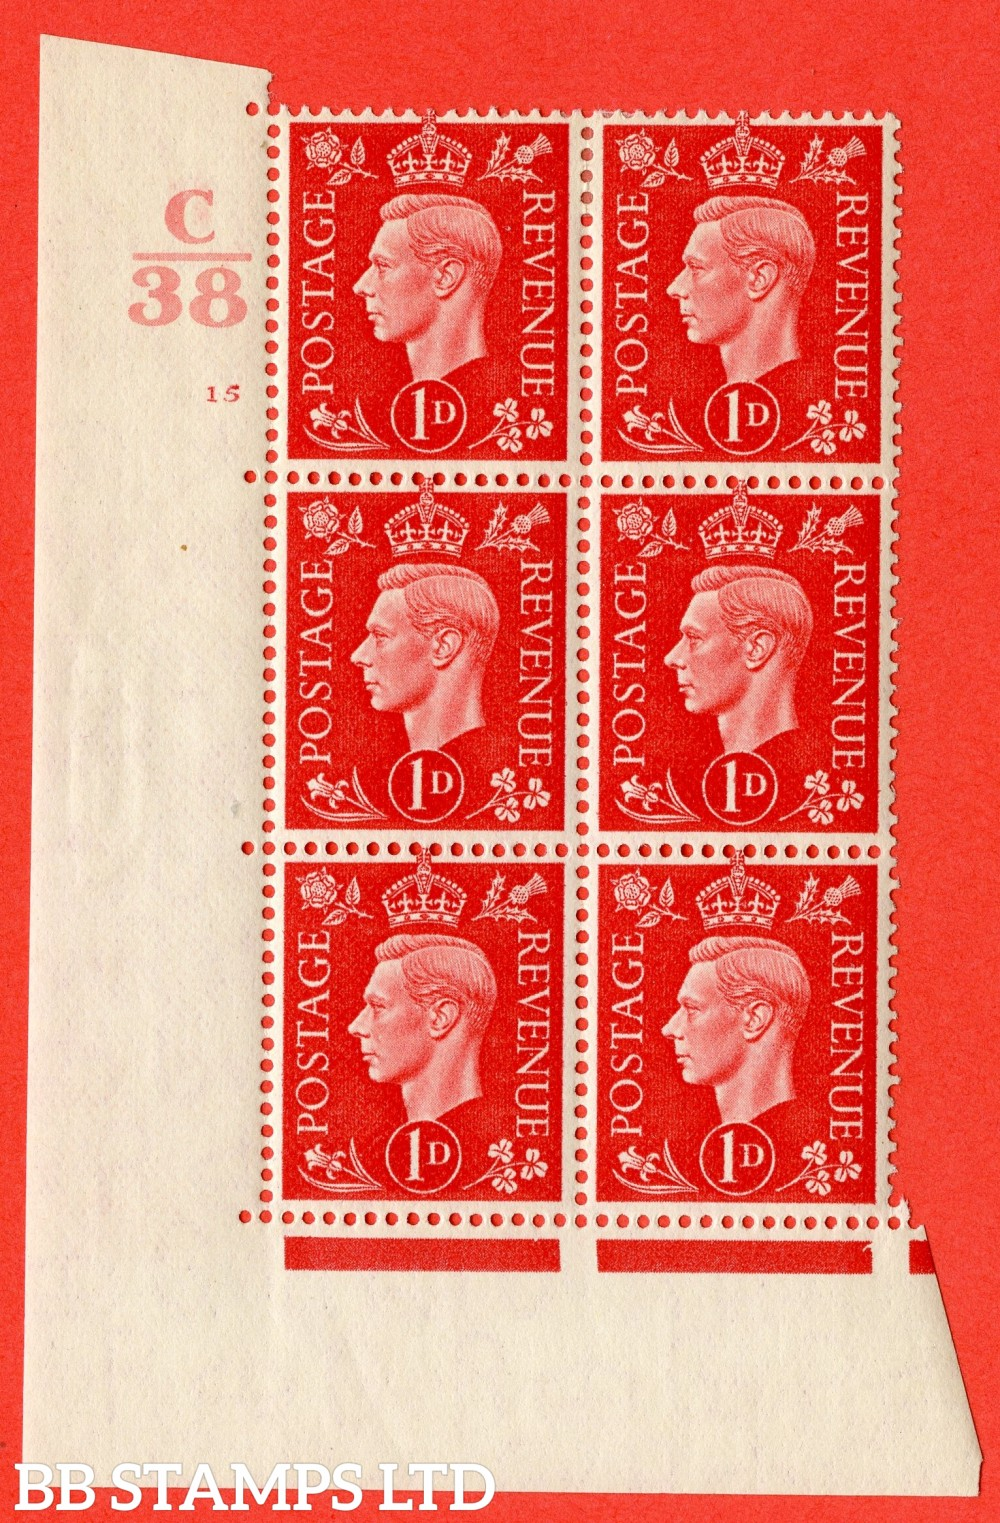 "SG. 463. Q4. 1d Scarlet. A superb UNMOUNTED MINT "" Control C38 cylinder 15 no dot "" block of 6 with perf type 5 E/I with marginal rule."